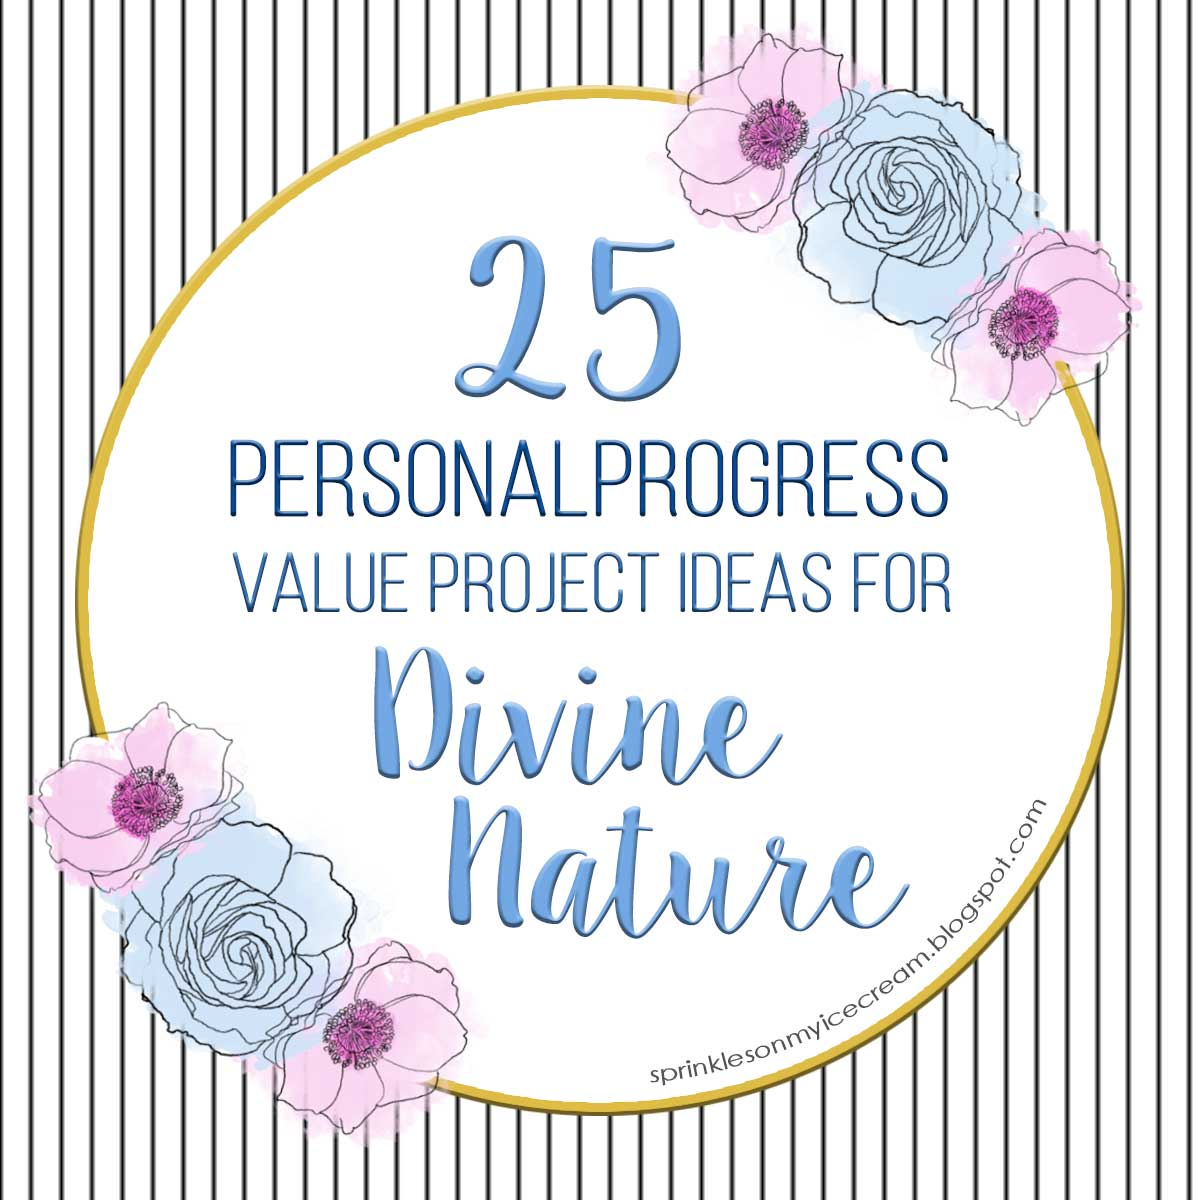 Divine Nature Value Project Deas